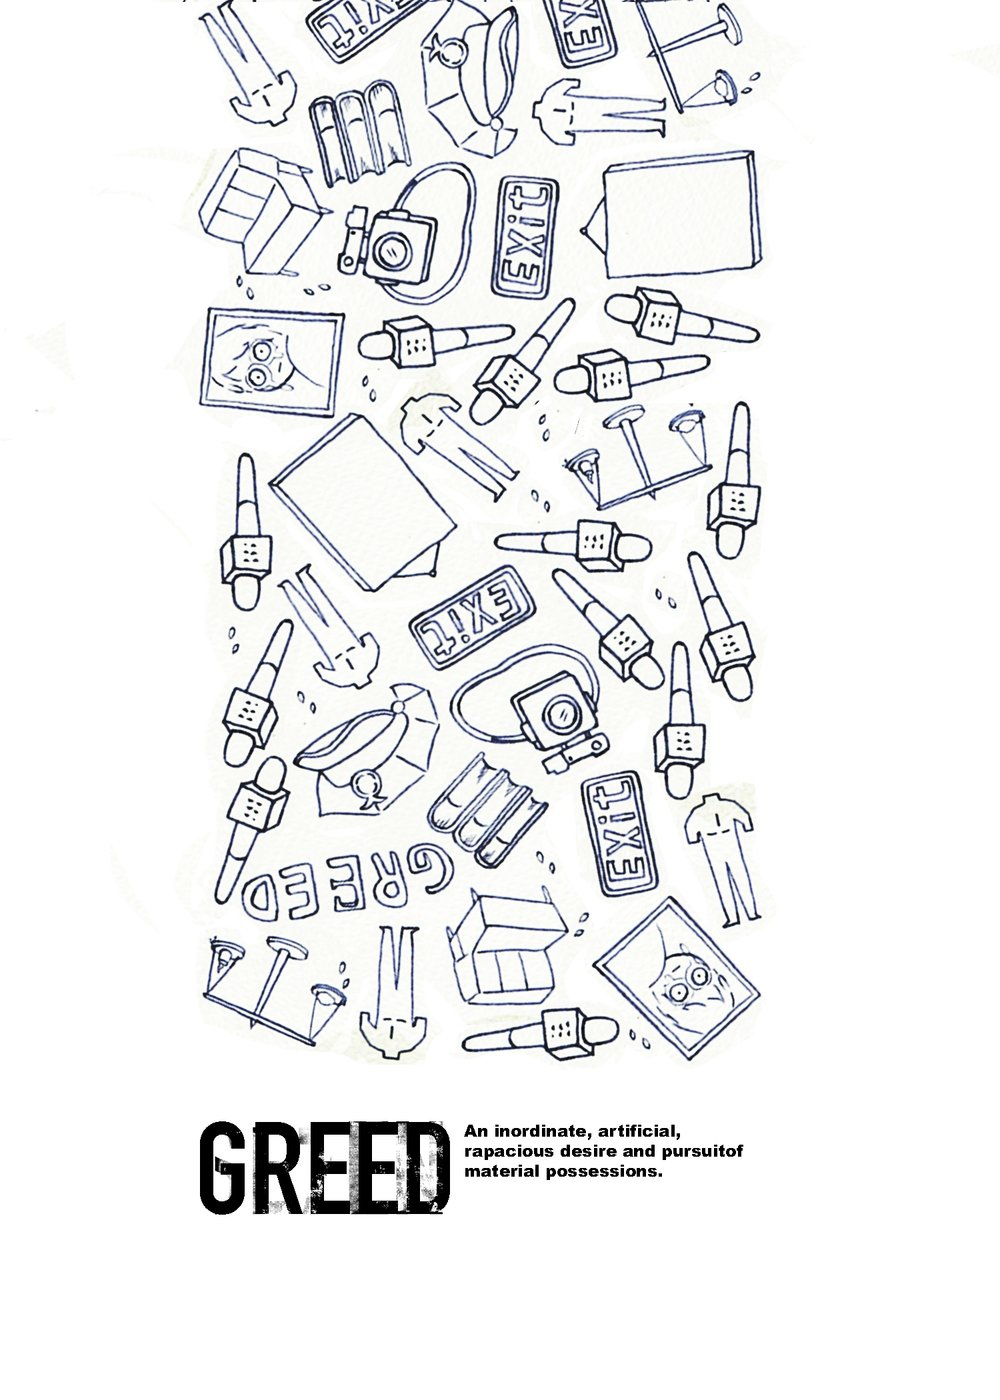 thesis-se7en-postcard greed.jpg